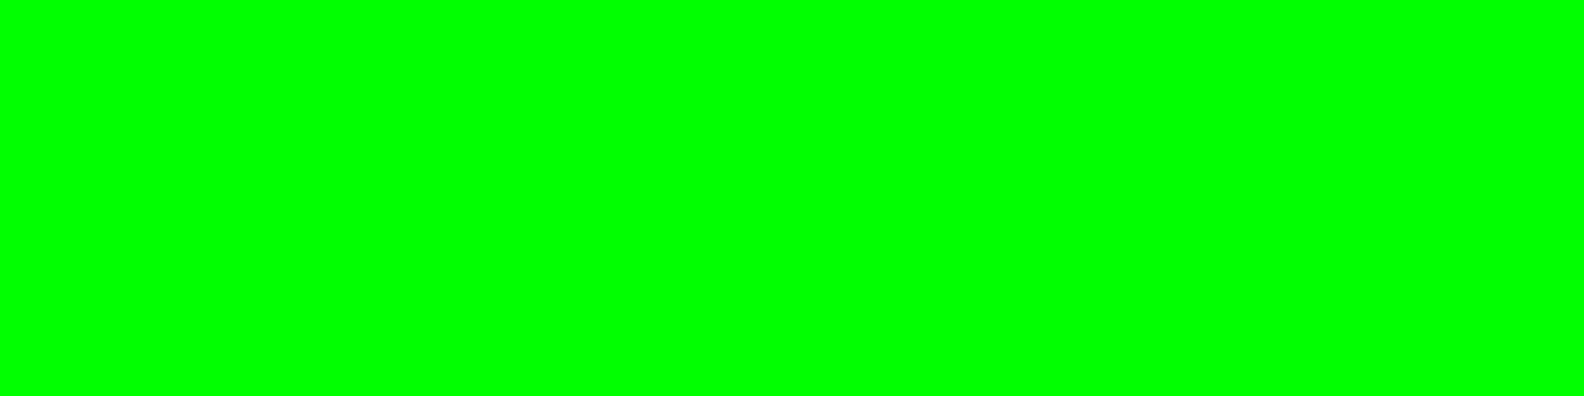 1584x396 Lime Web Green Solid Color Background